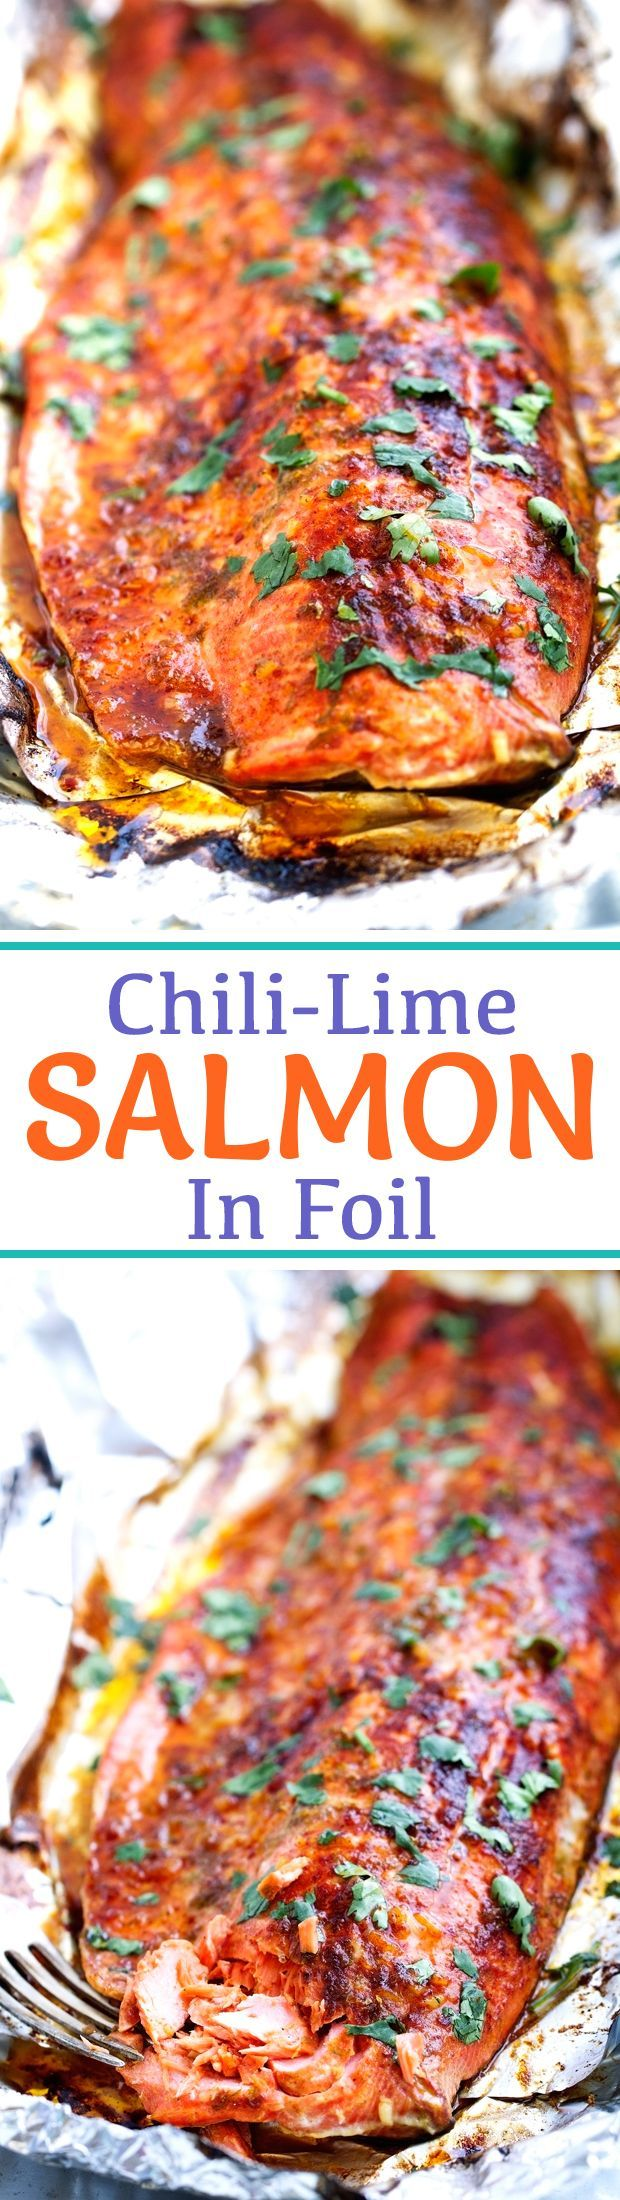 Chili-Lime Baked Salmon in Foil - This recipe takes less than 30 minutes and is perfect for weeknight dinners!